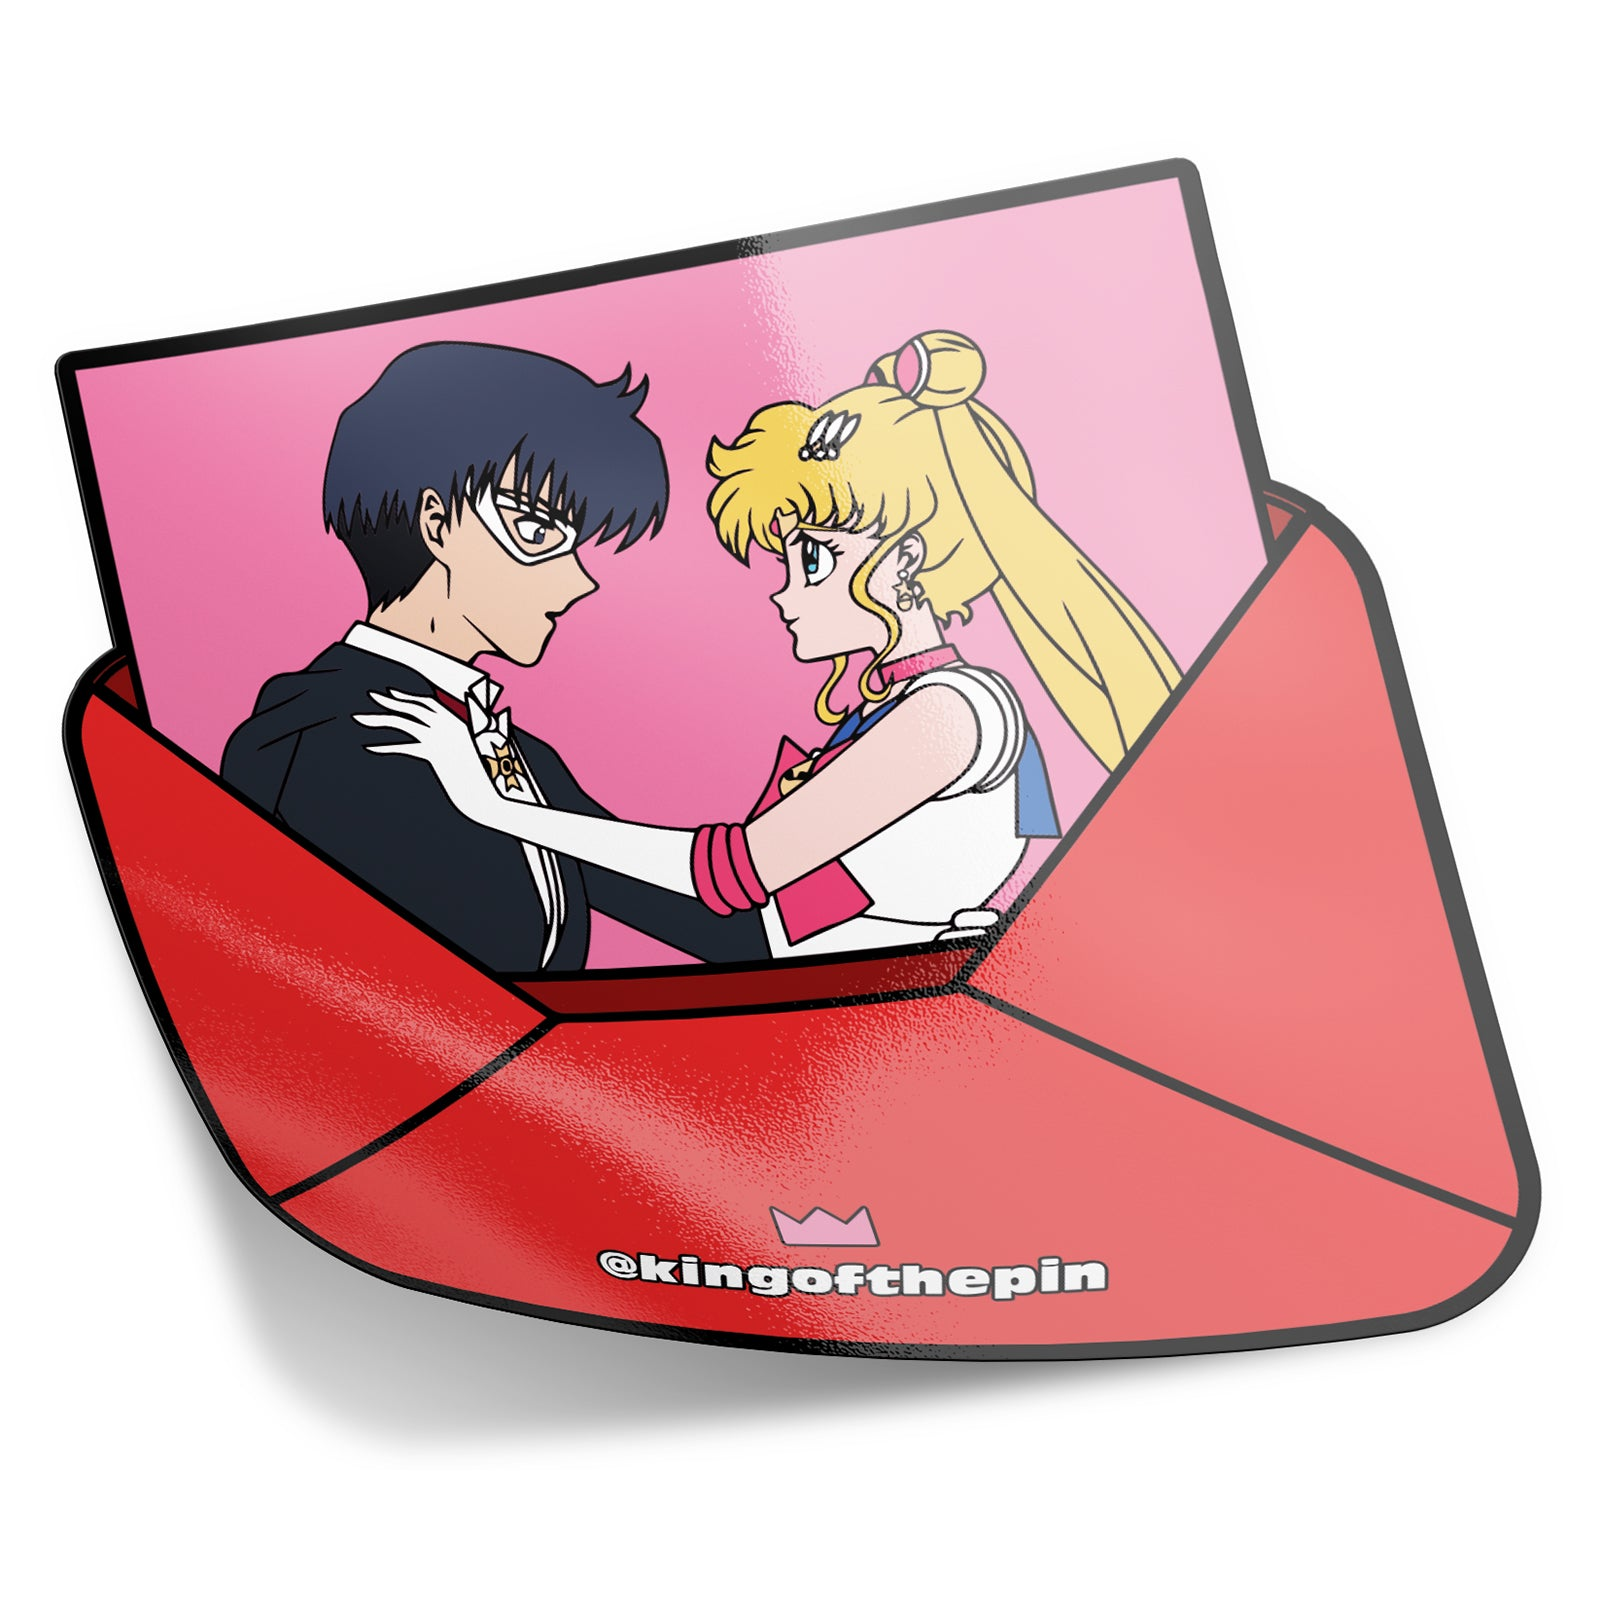 Sailor Moon & Tuxedo Mask Love Letter Sticker (Pre-Order)